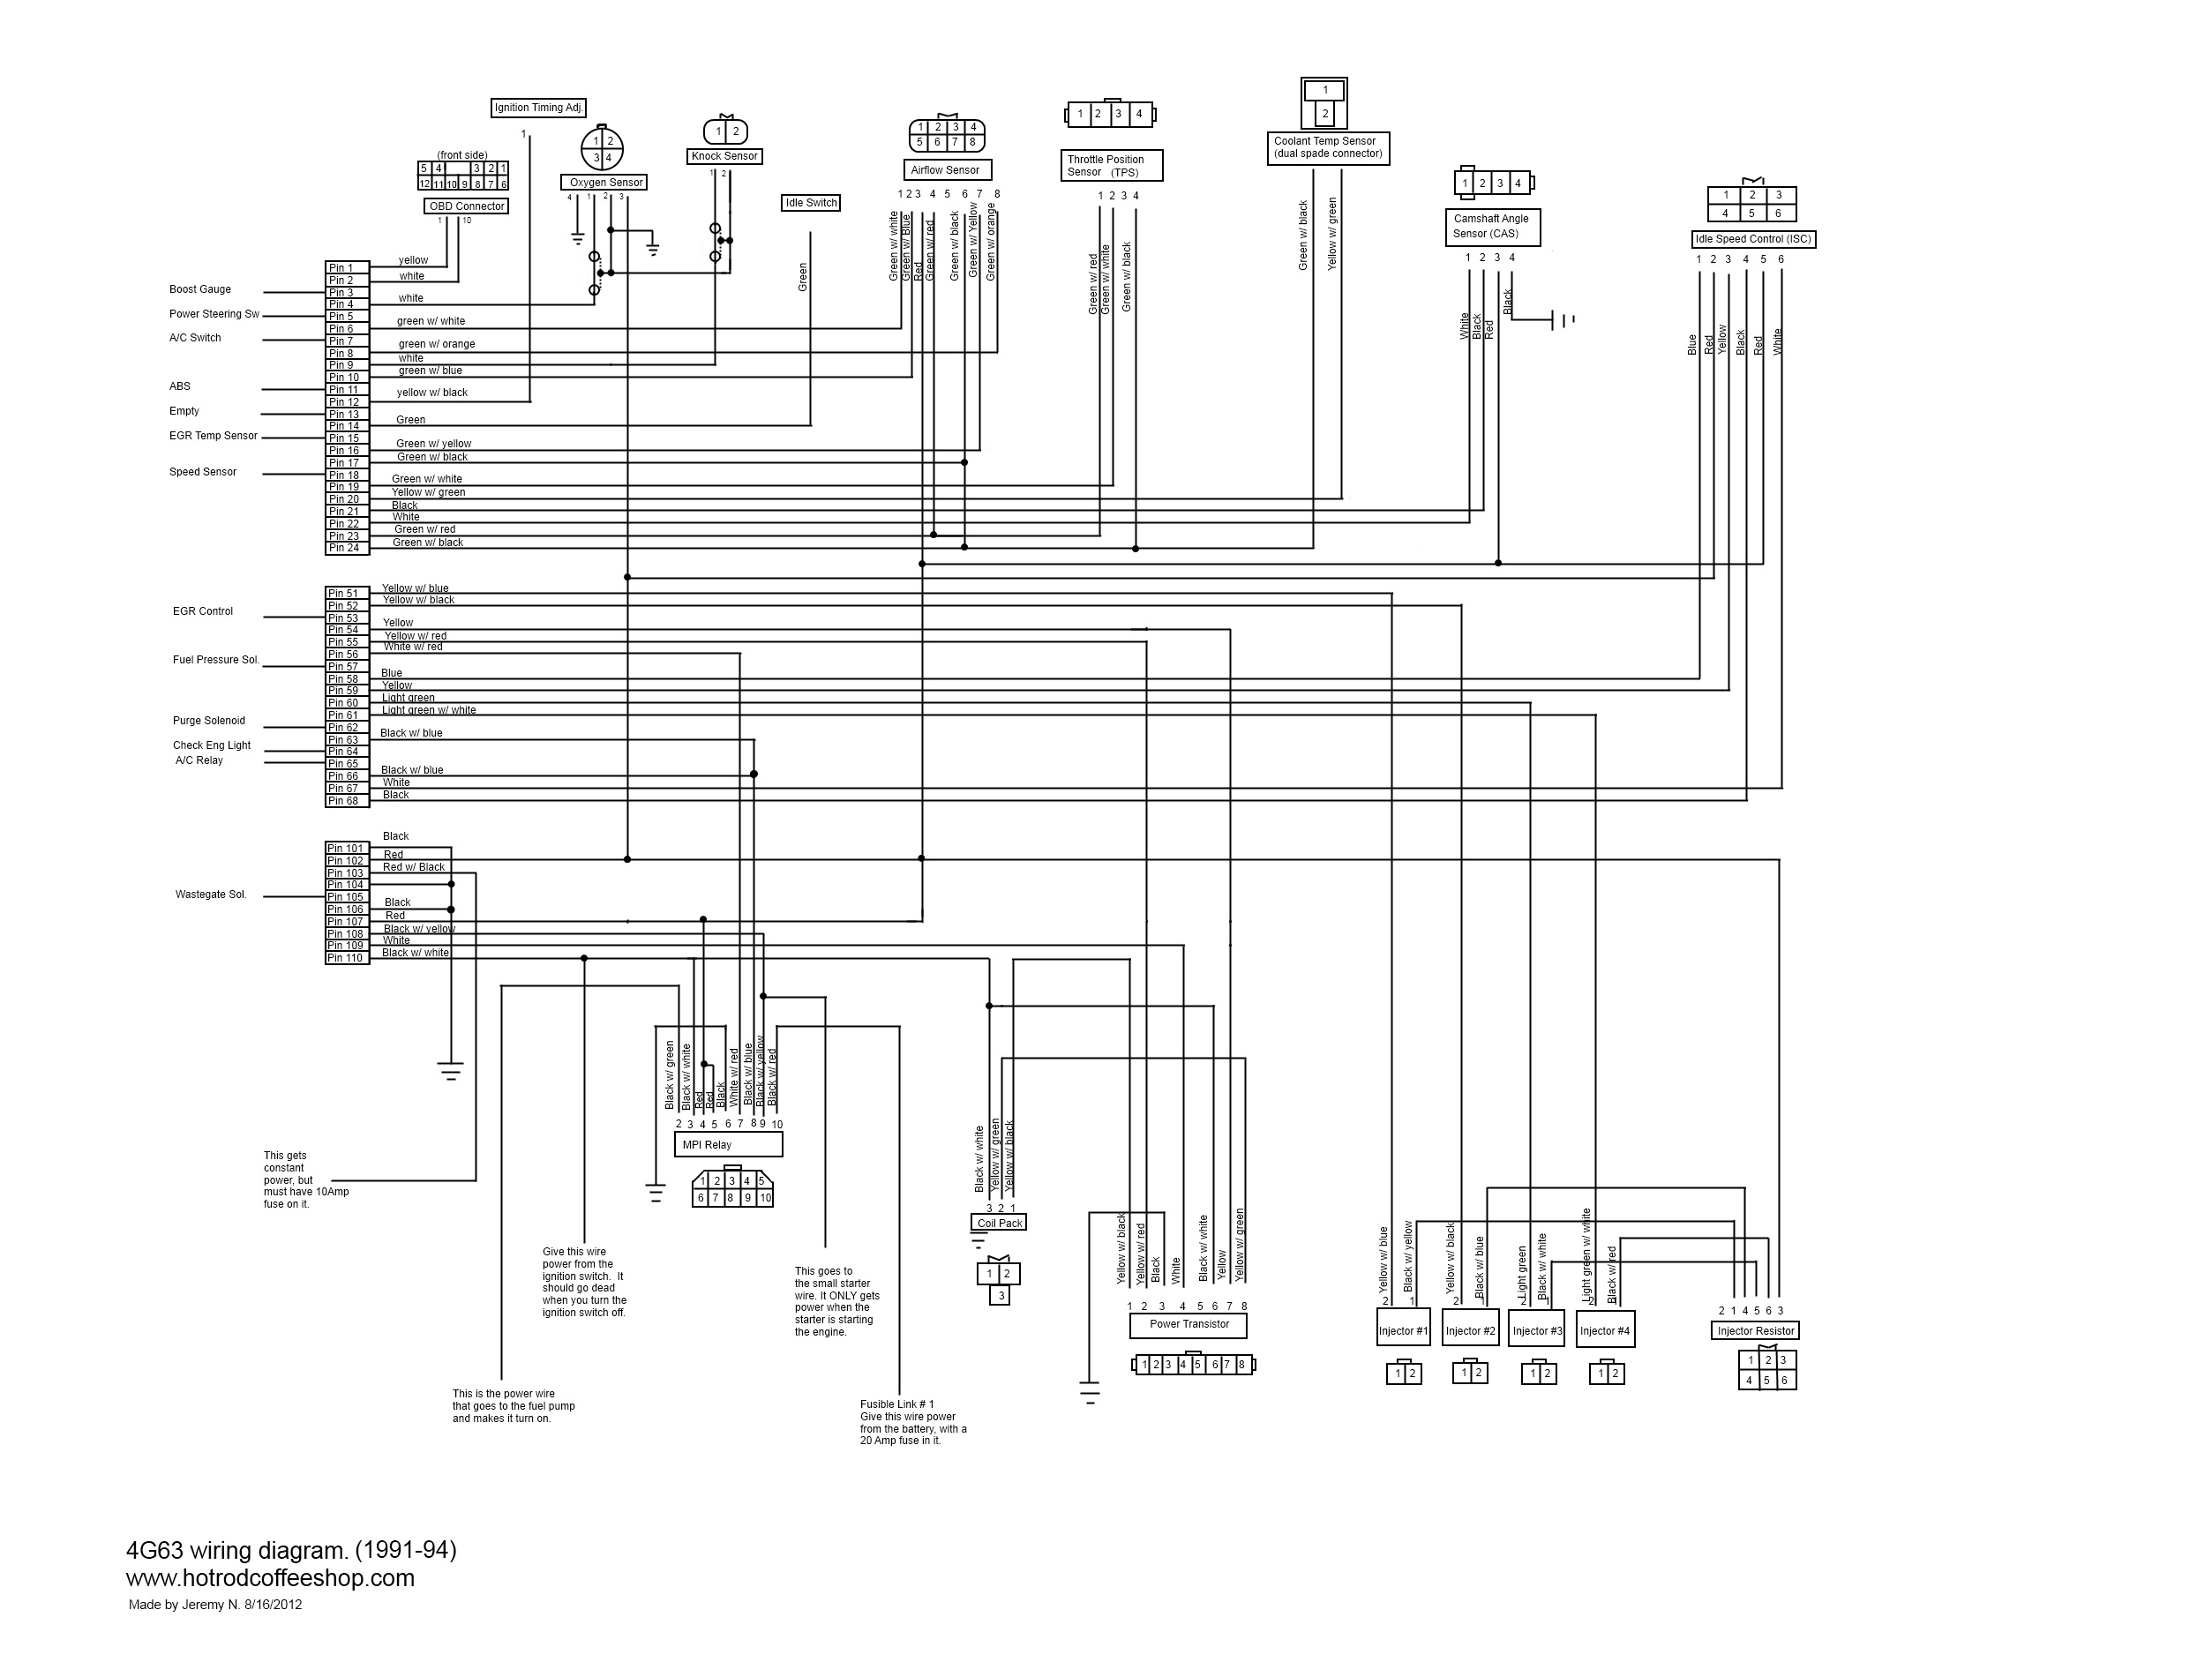 1991-94 DSM 4G63 wiring diagram